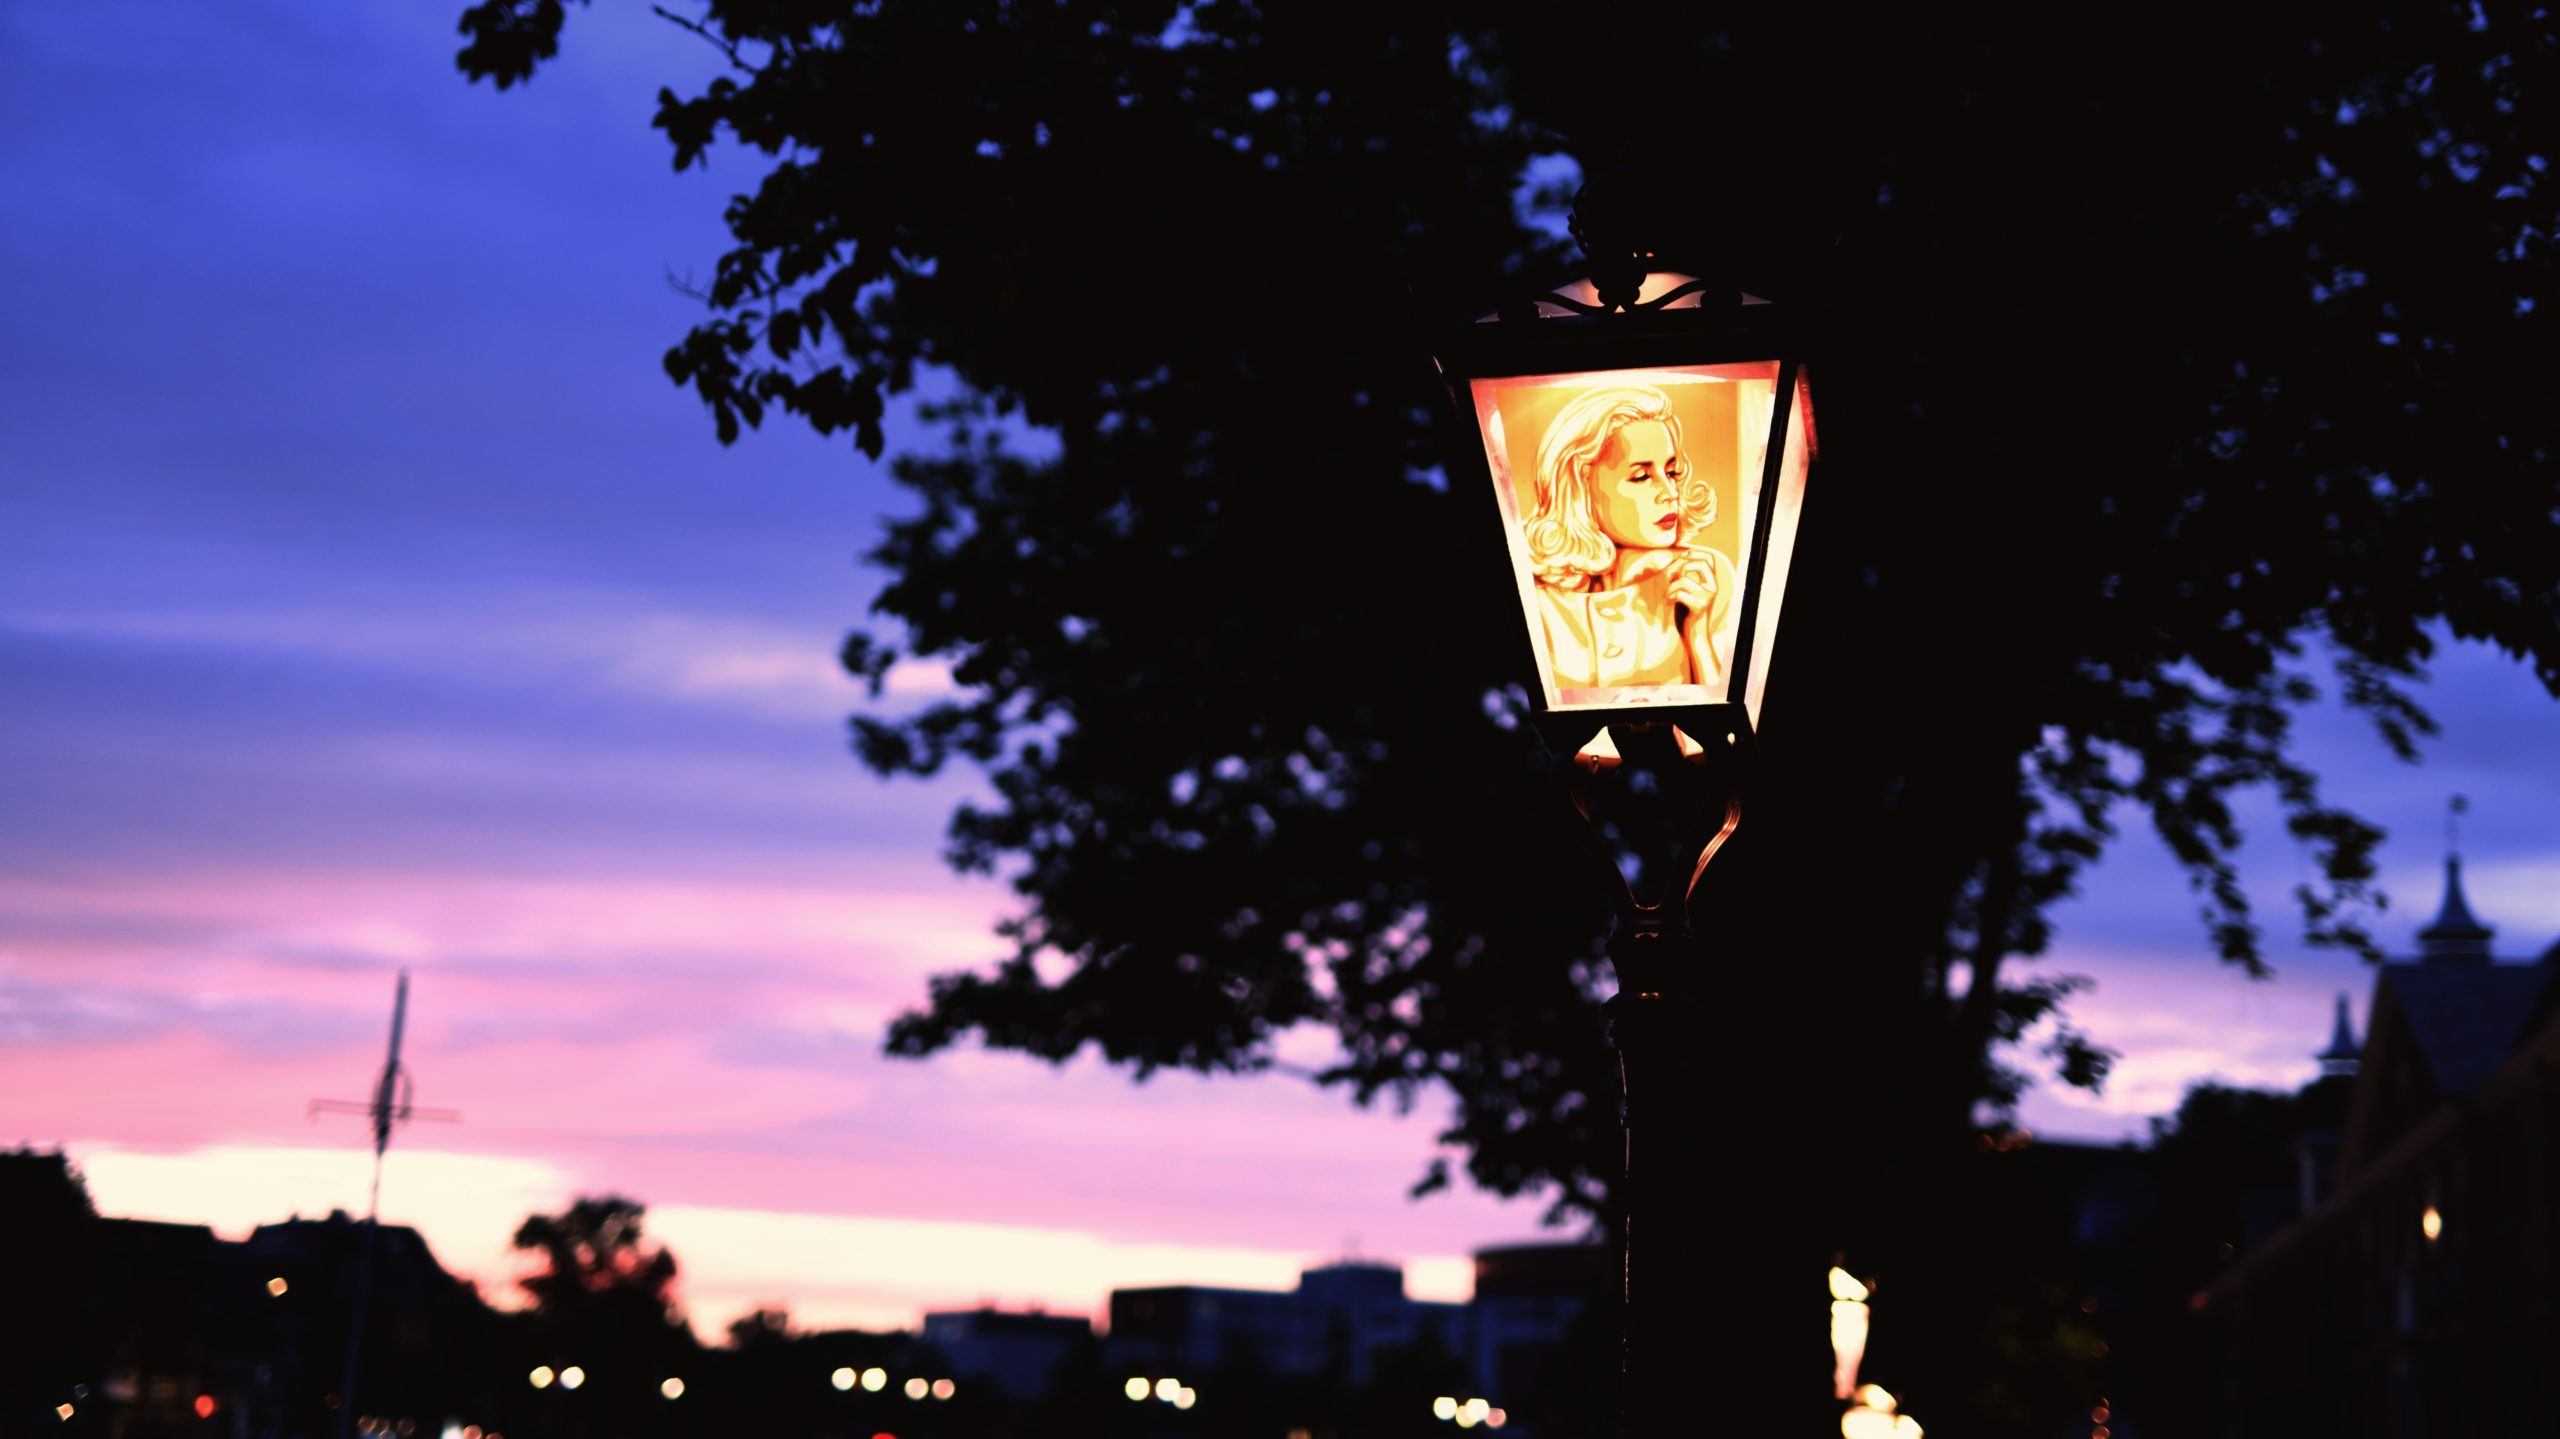 Tape Artwork on street lamp in Amsterdam by Max Zorn